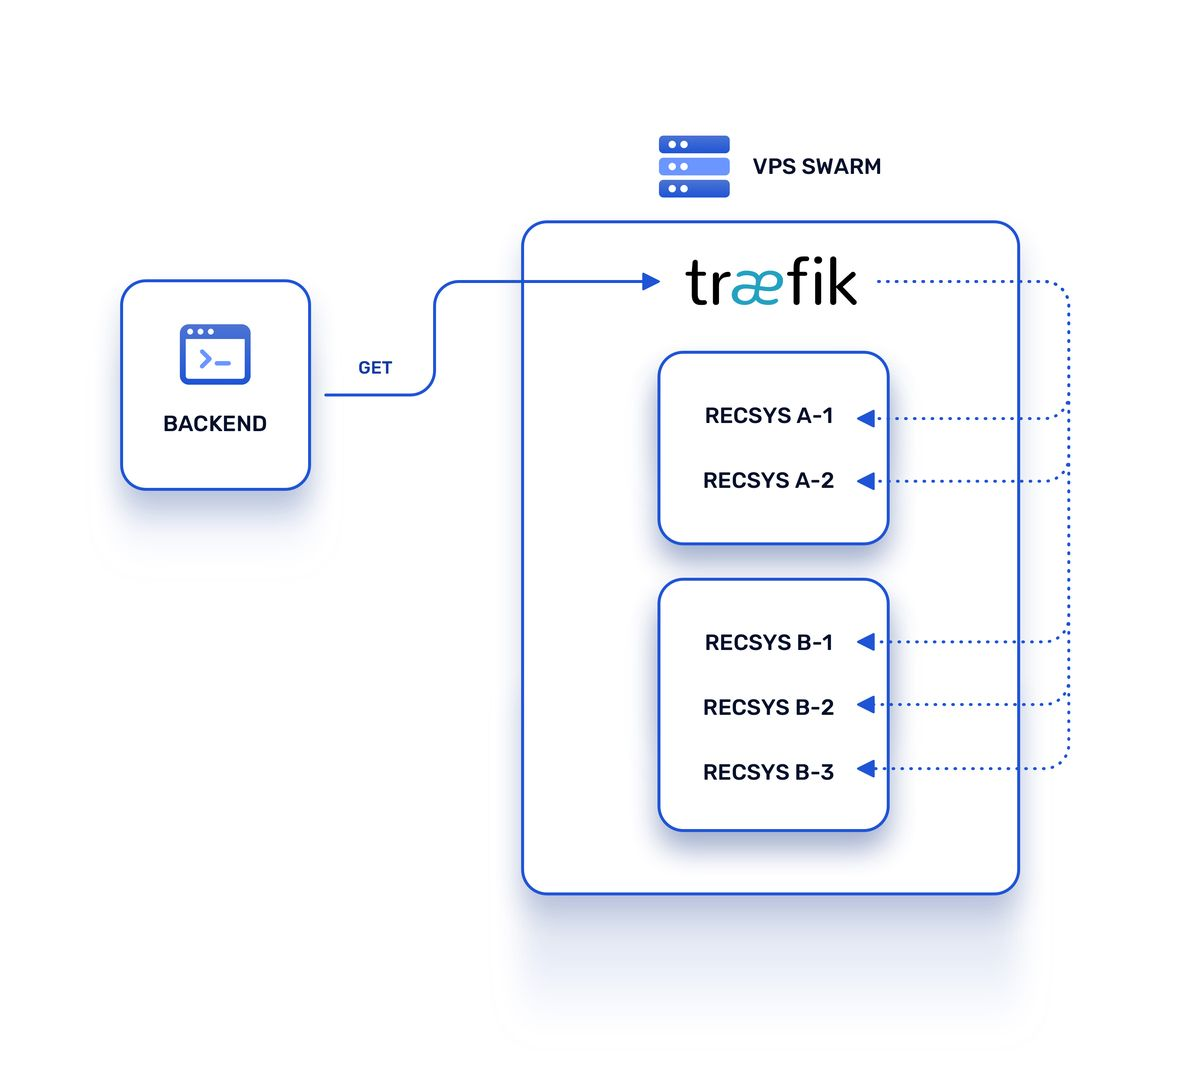 Architecture with Traefik as reverse proxy